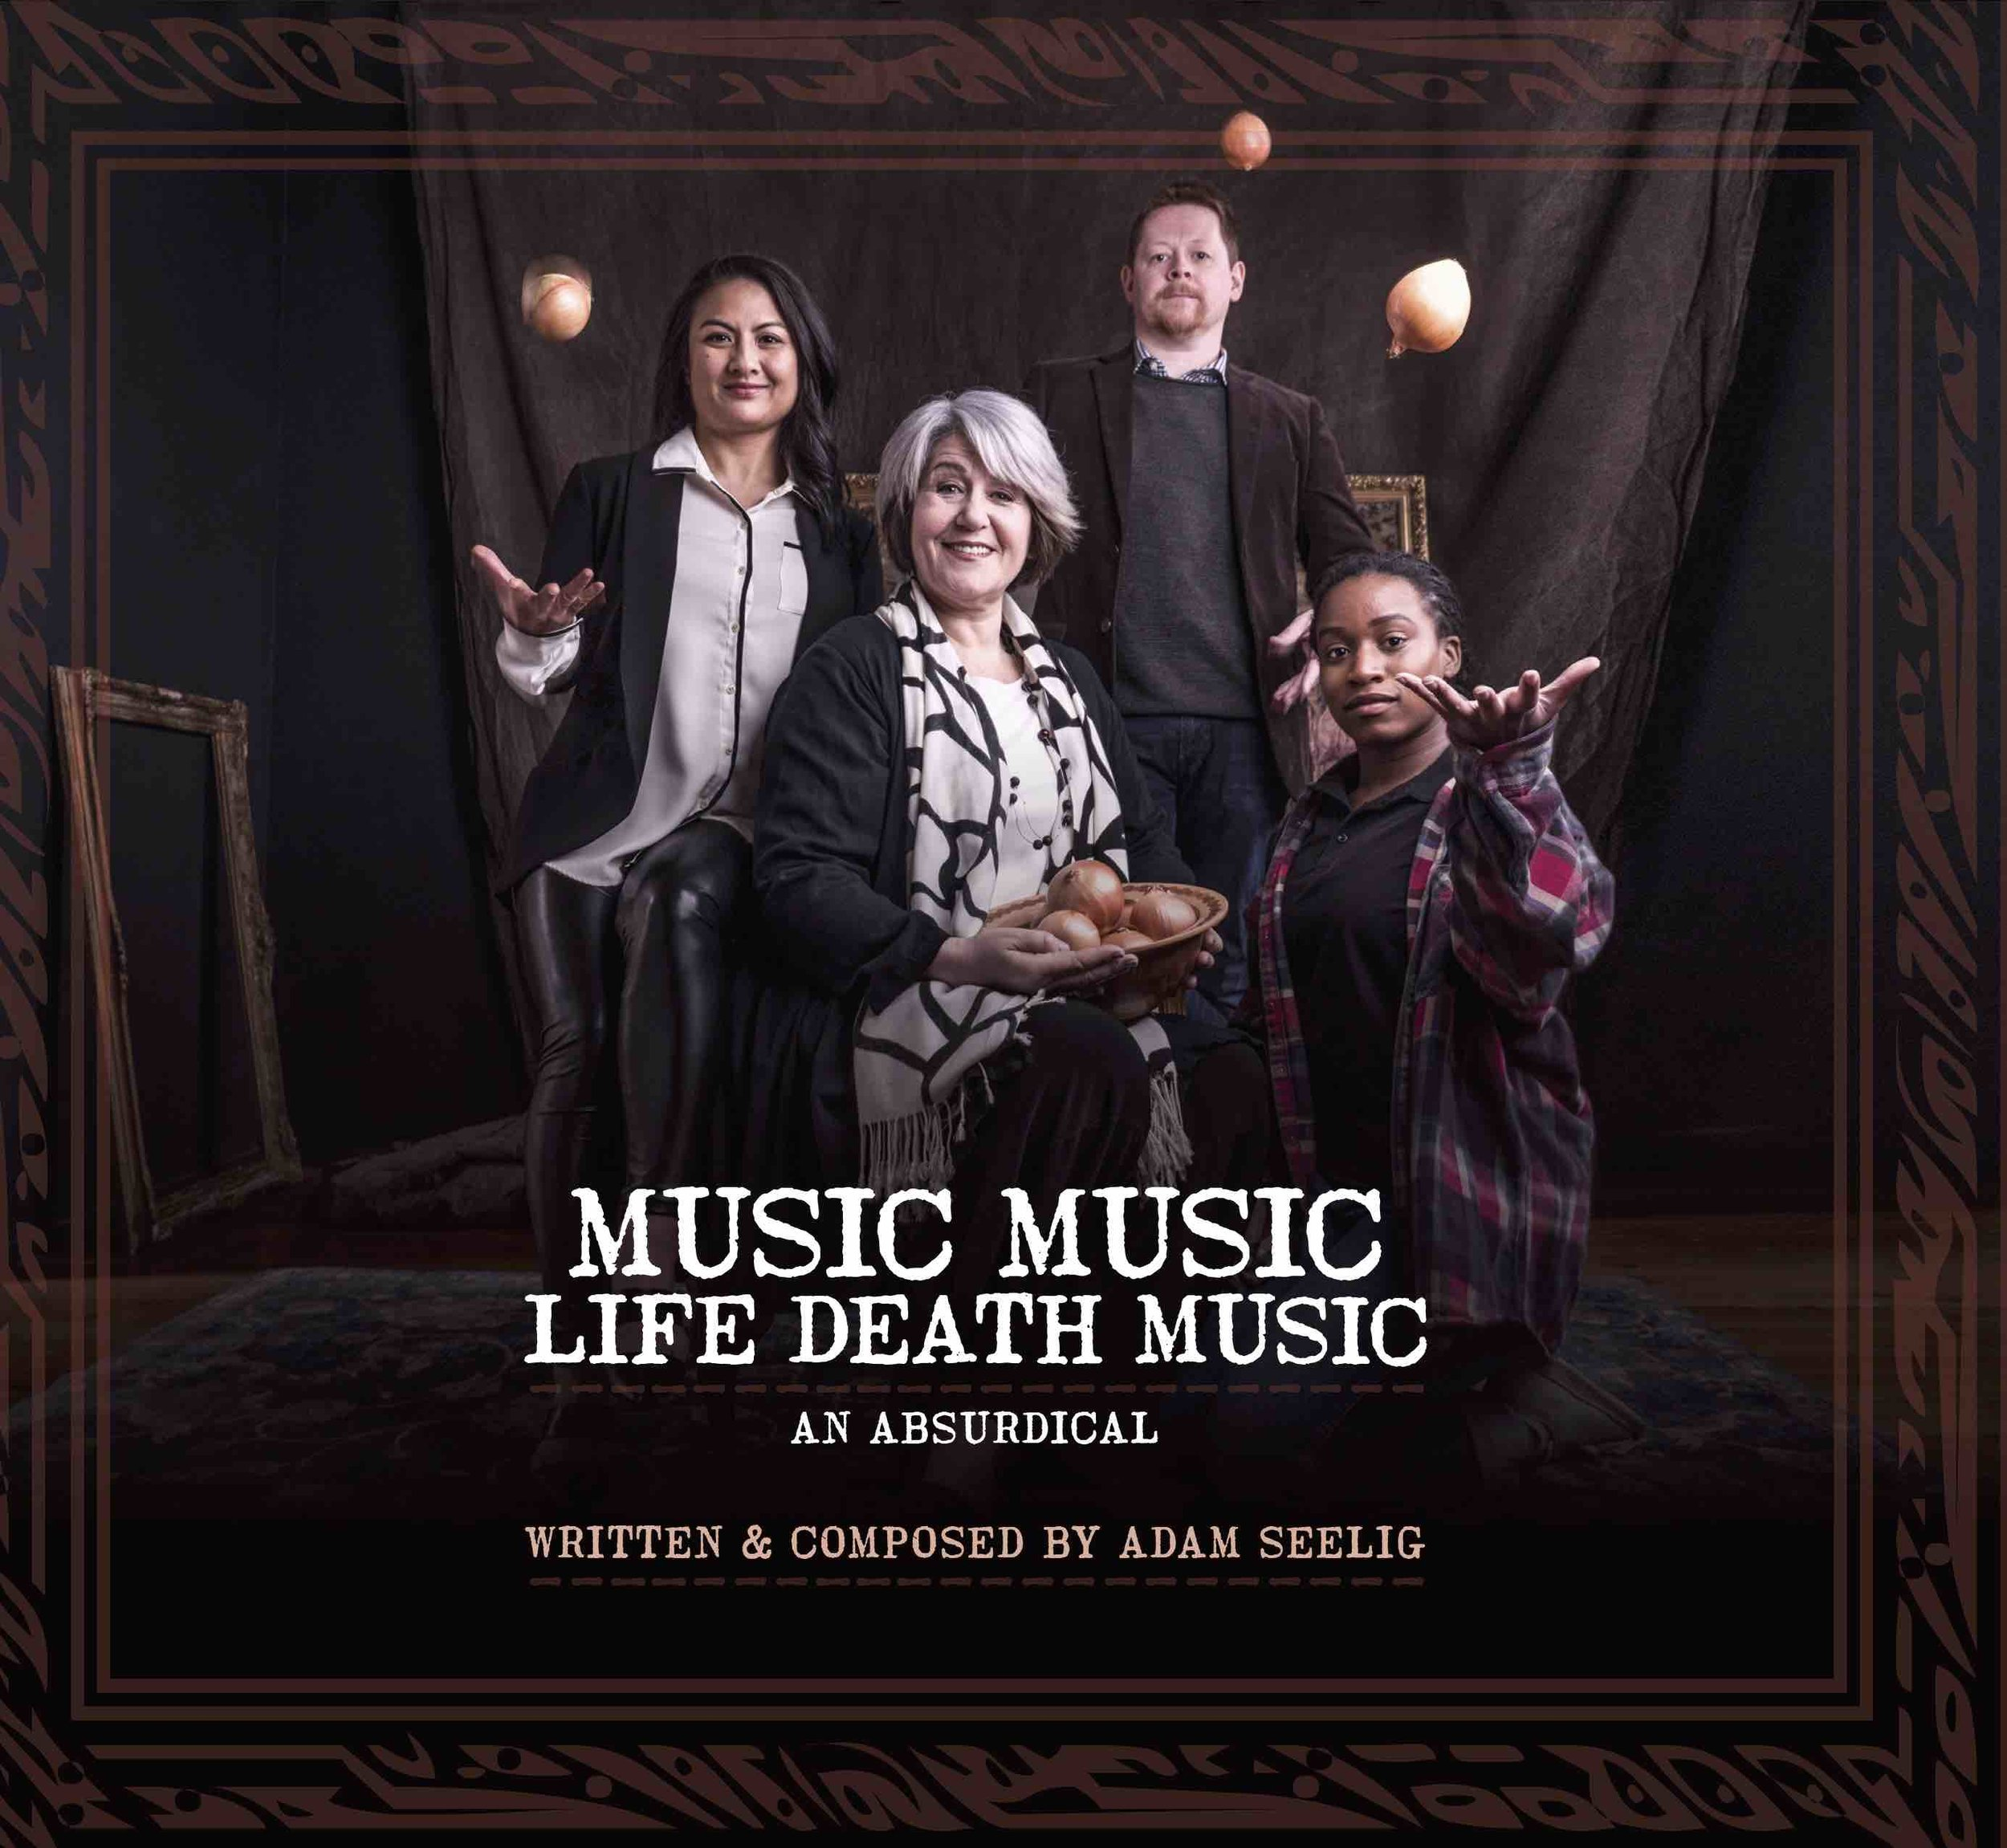 Book Cover MUSIC MUSIC LIFE DEATH MUSIC lowres.jpg